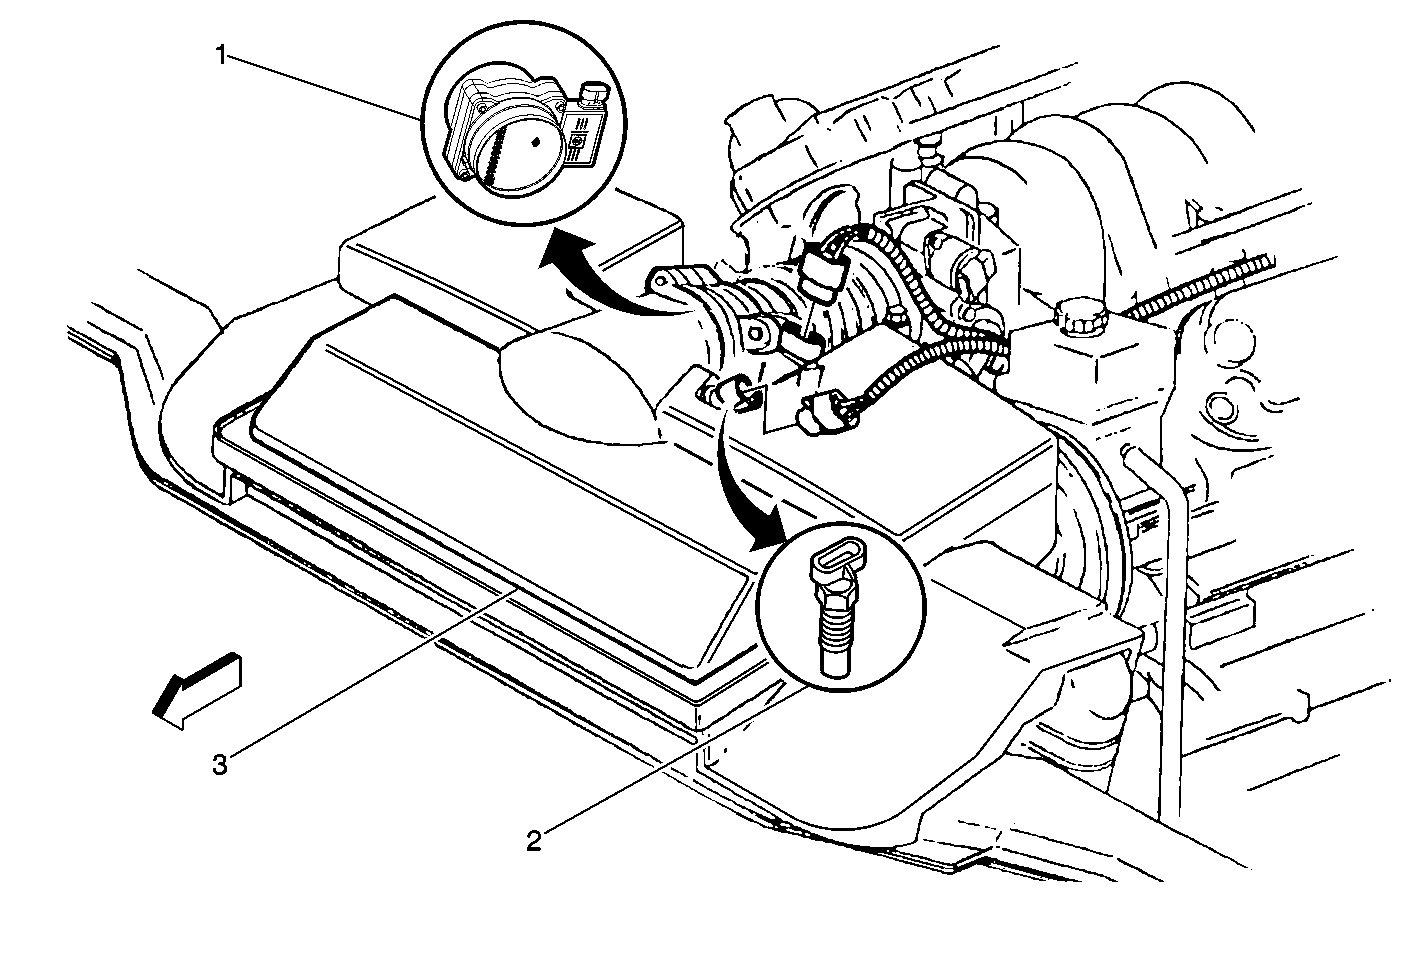 1997 Buick Lesabre Engine Diagram : 33 Wiring Diagram